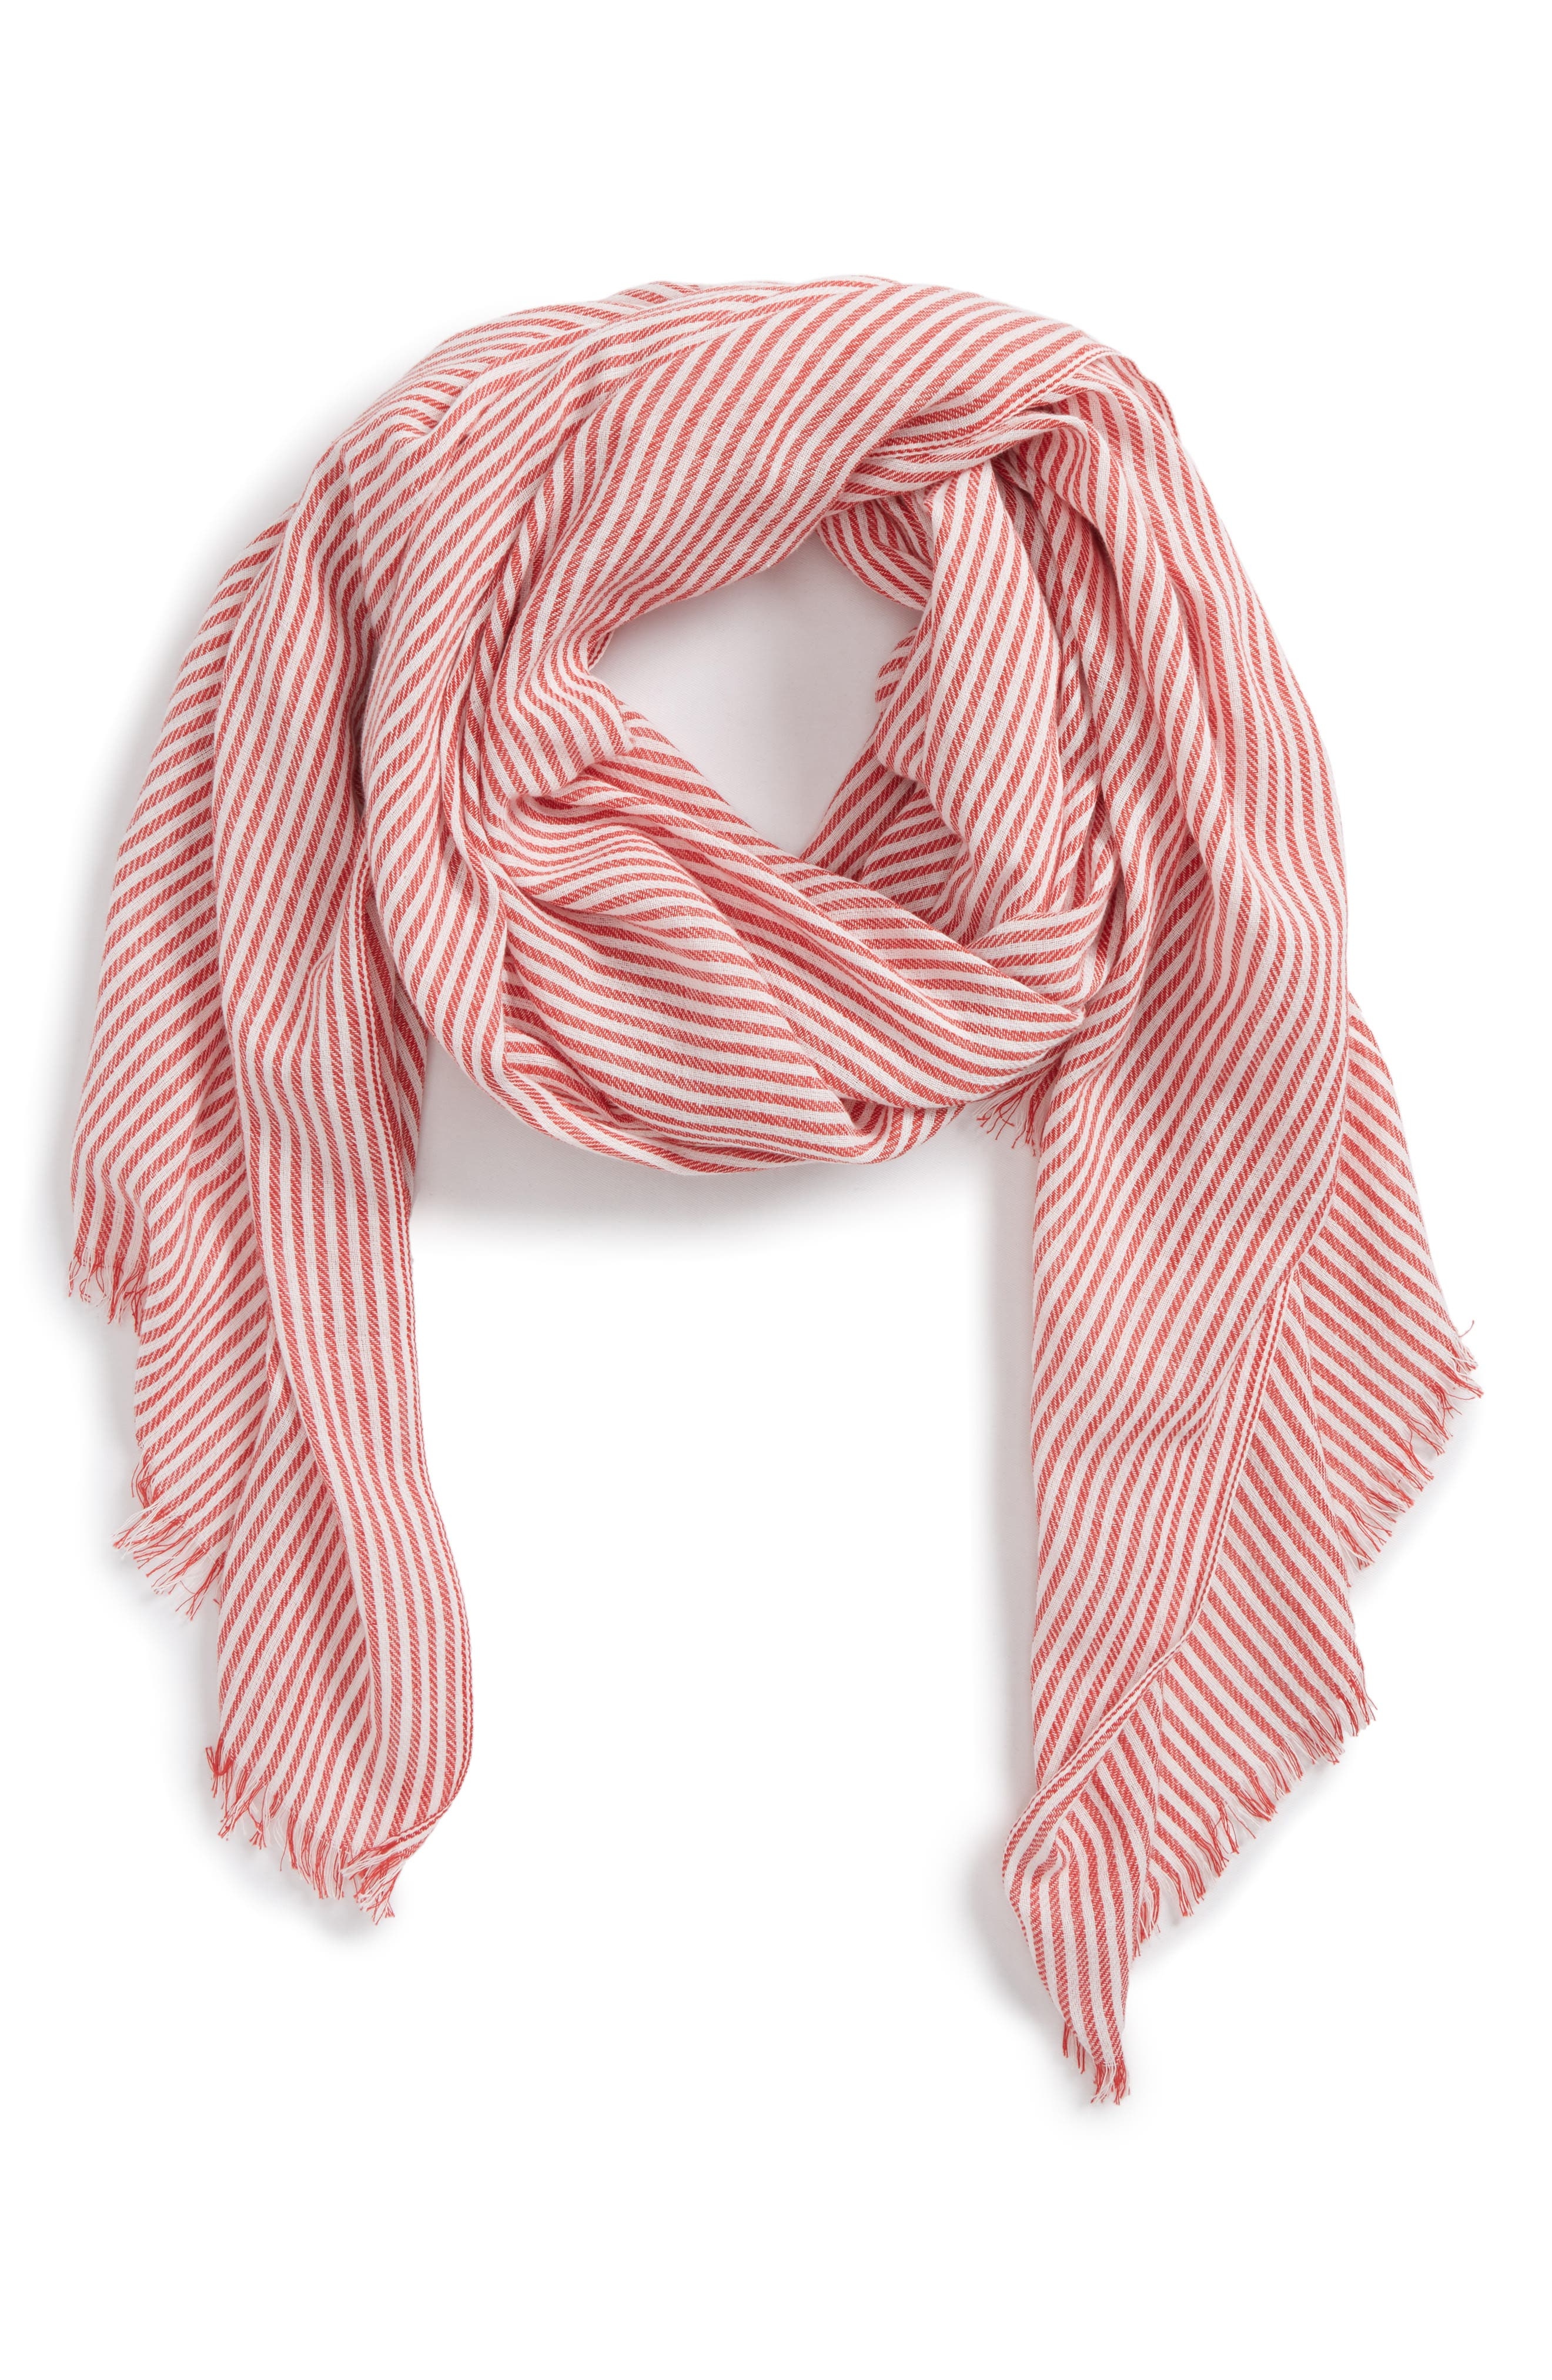 Engineer Stripe Scarf,                             Main thumbnail 1, color,                             Red Multi